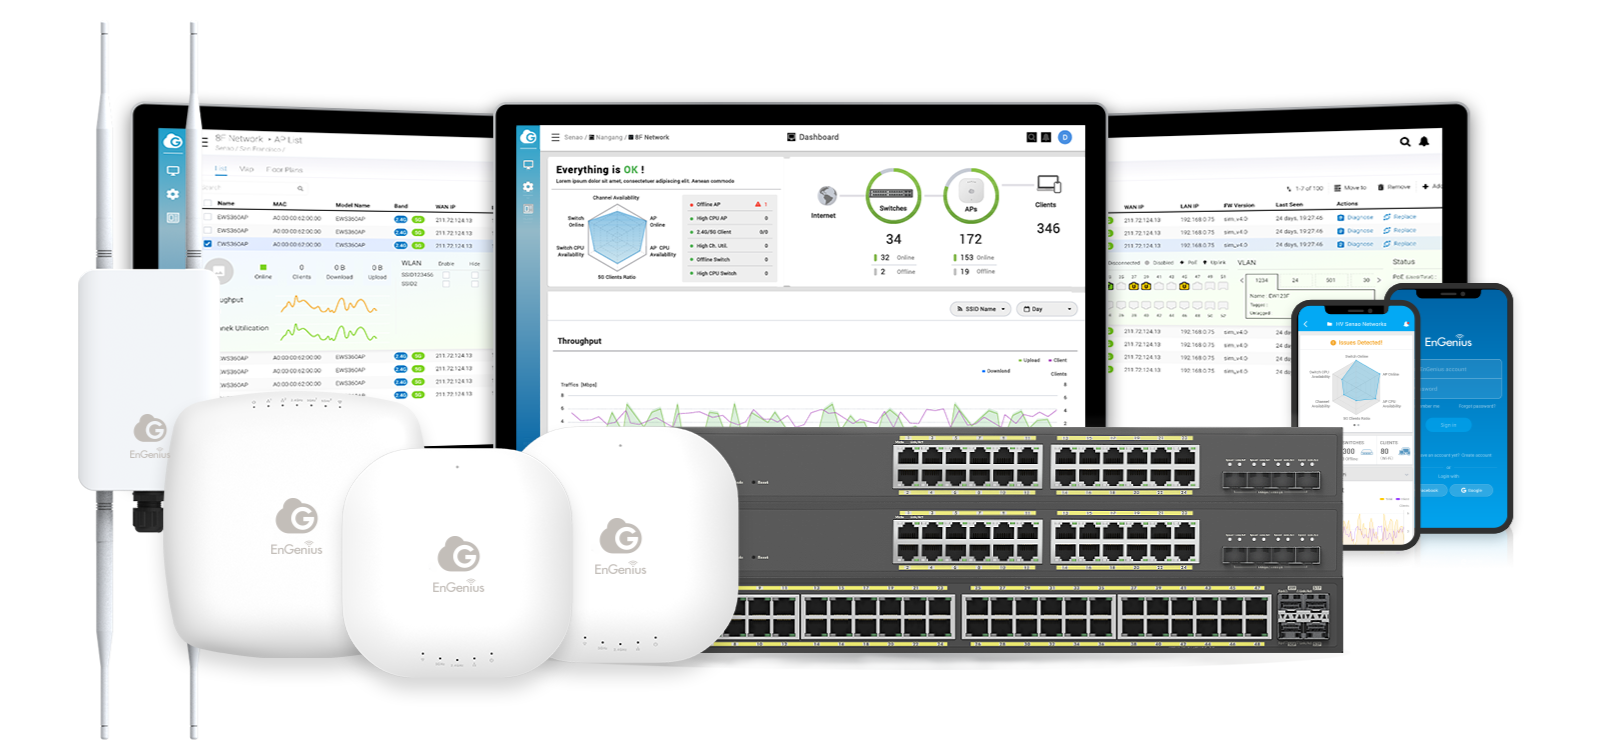 Photo of Engenius Cloud Review with ECS1008P POE Switch & ECW120 Access Point– Cloud-managed hardware with no subscription costs or cloud key